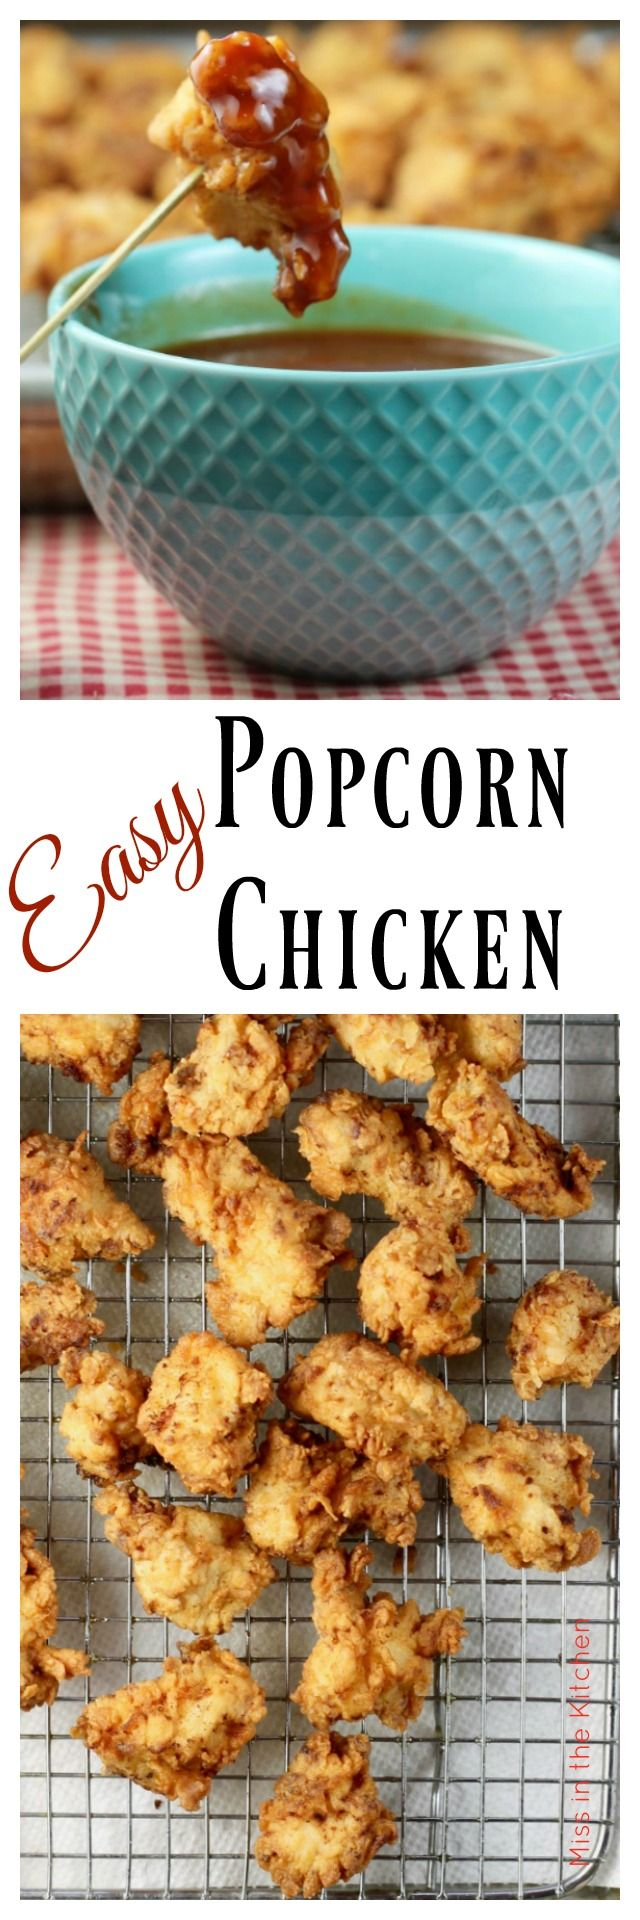 Easy Popcorn Chicken Recipe ~ great for an appetizer or quick weeknight dinner from MissintheKitchen.com